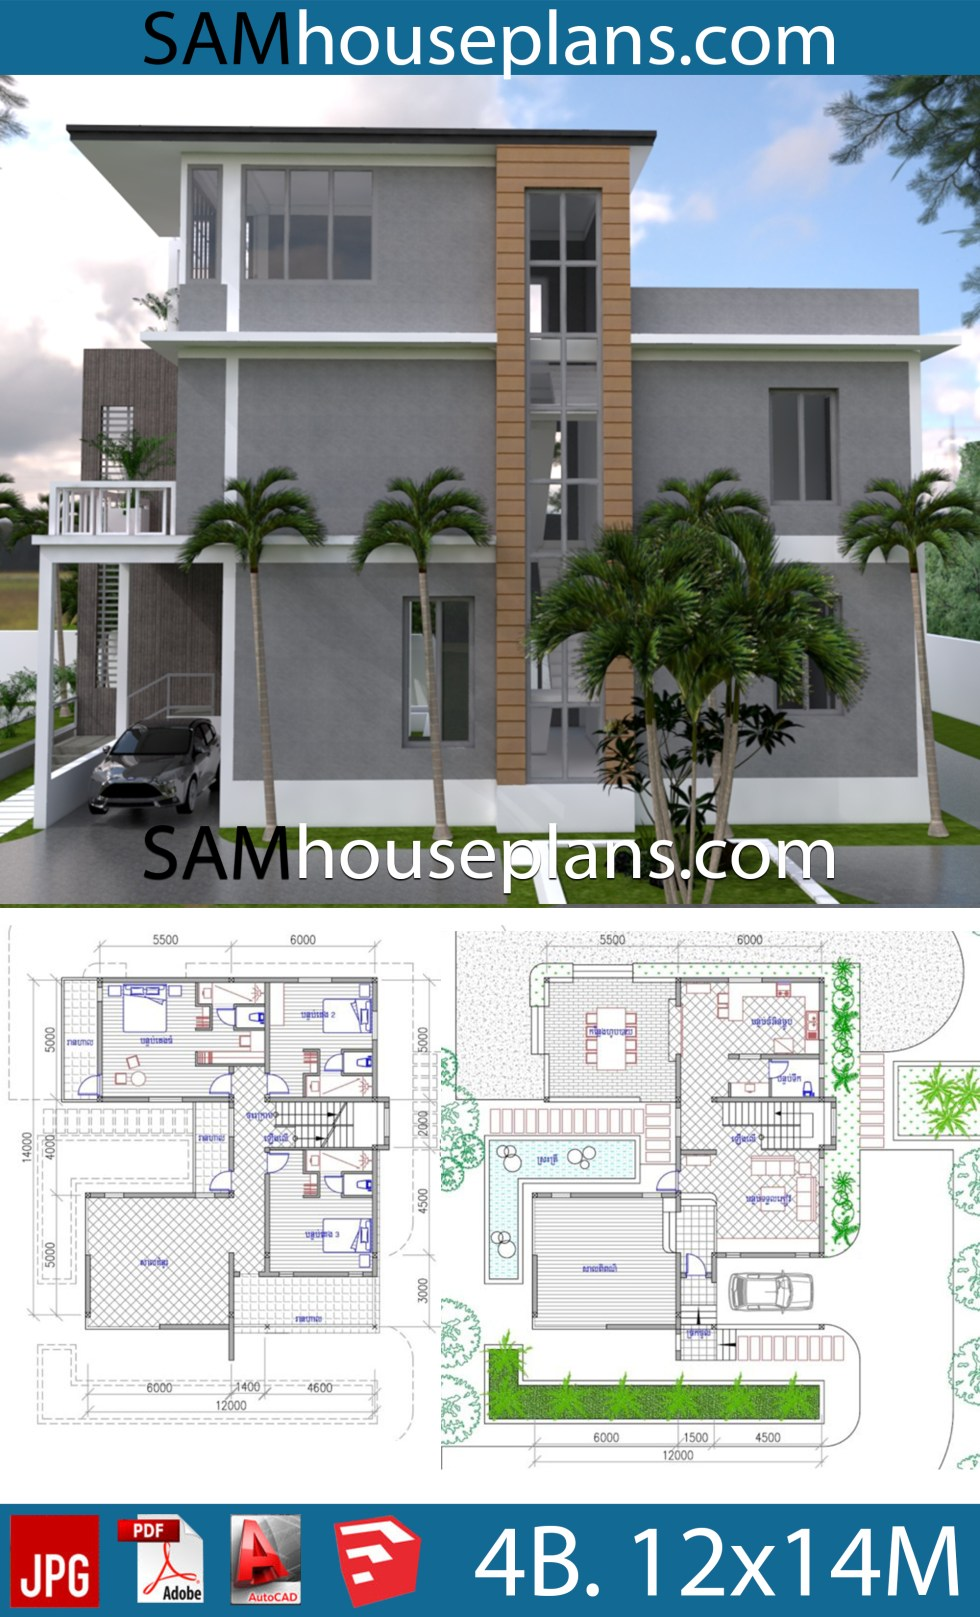 House Plans 12x14 with 4 Bedrooms